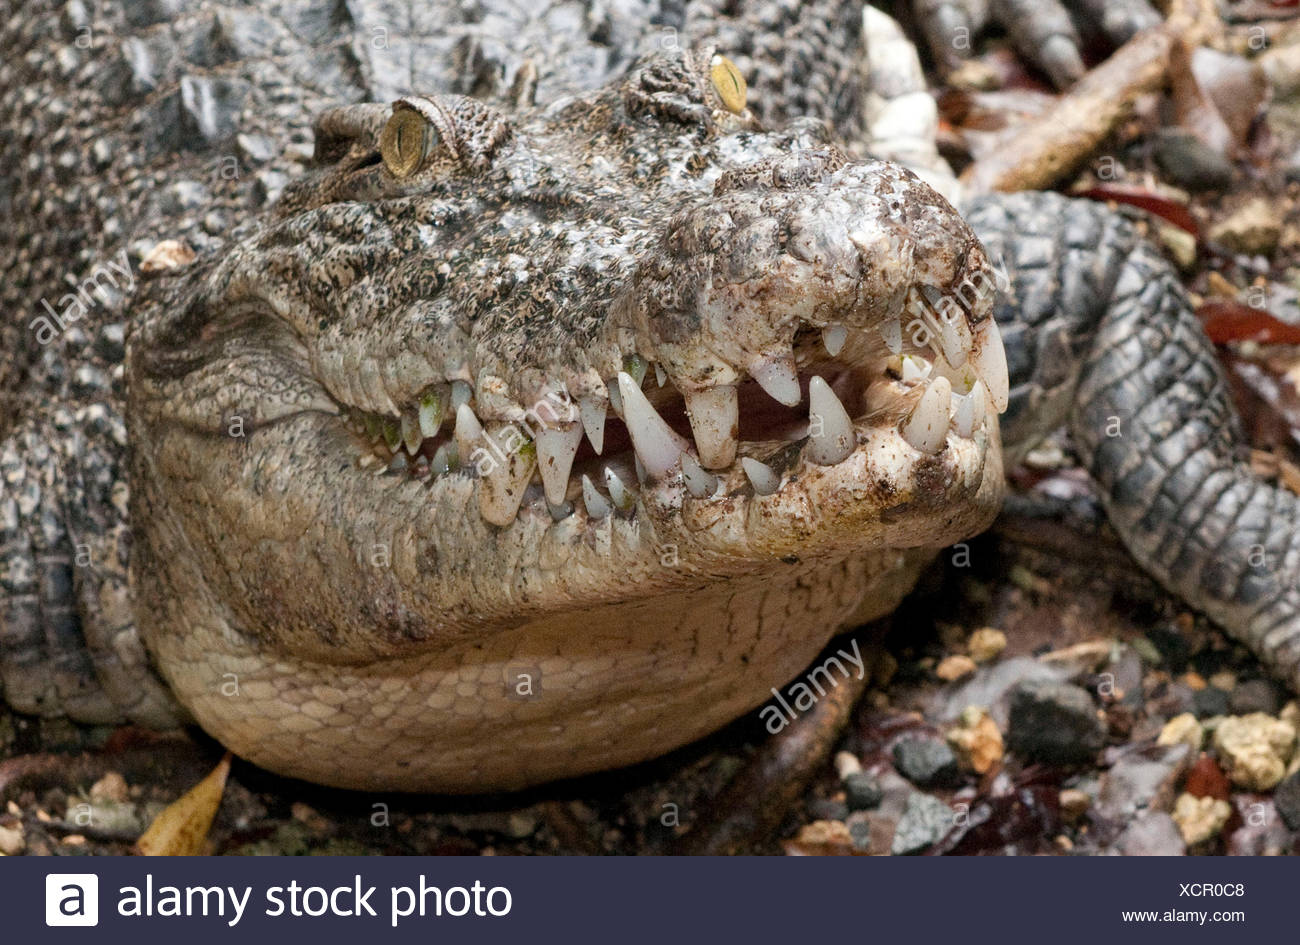 Estuarine Crodocile / (Crocodylus porosus) / Saltwater Crocodile Stock Photo